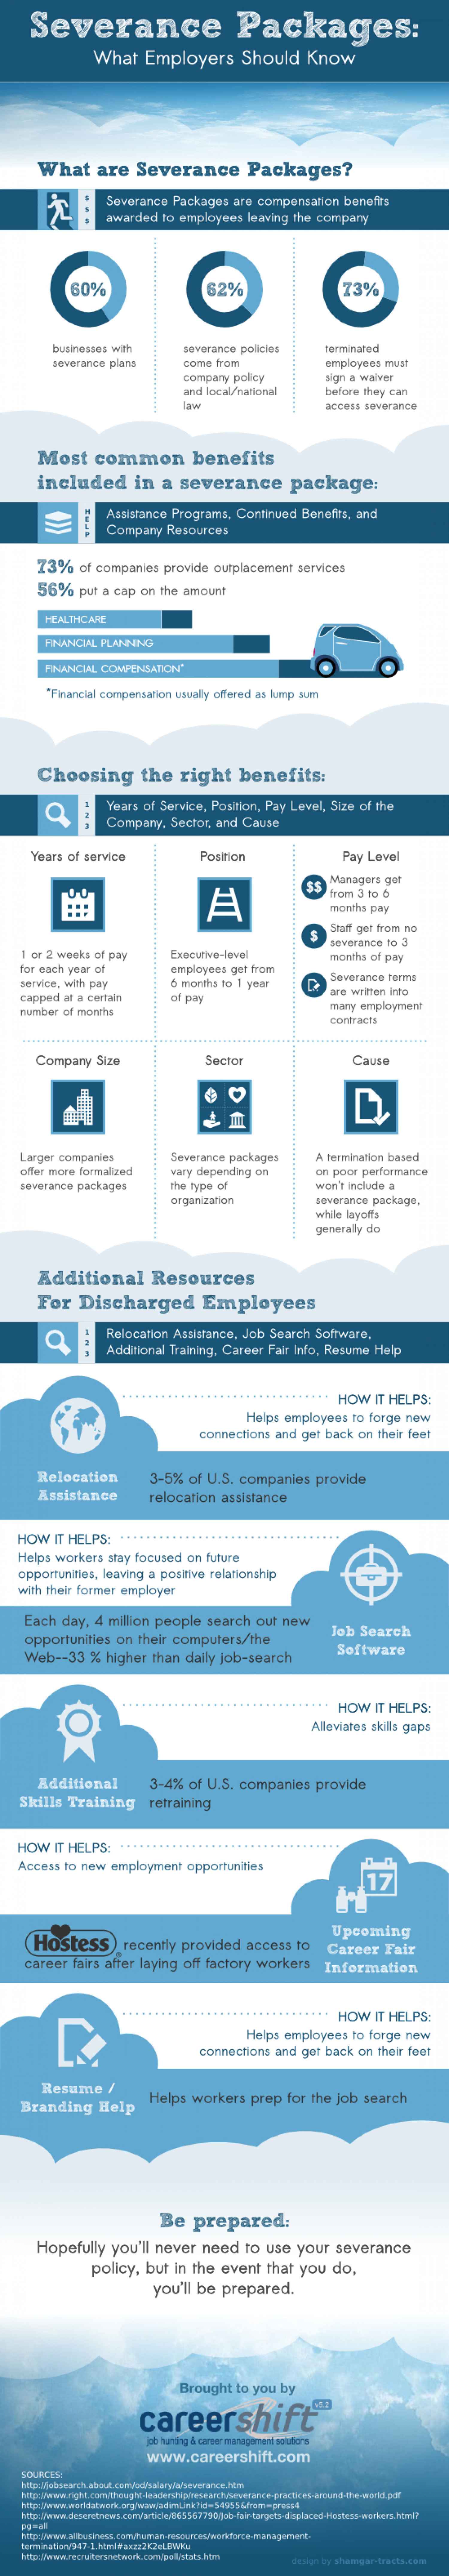 Infographic: An Introduction to Severance Packages Infographic